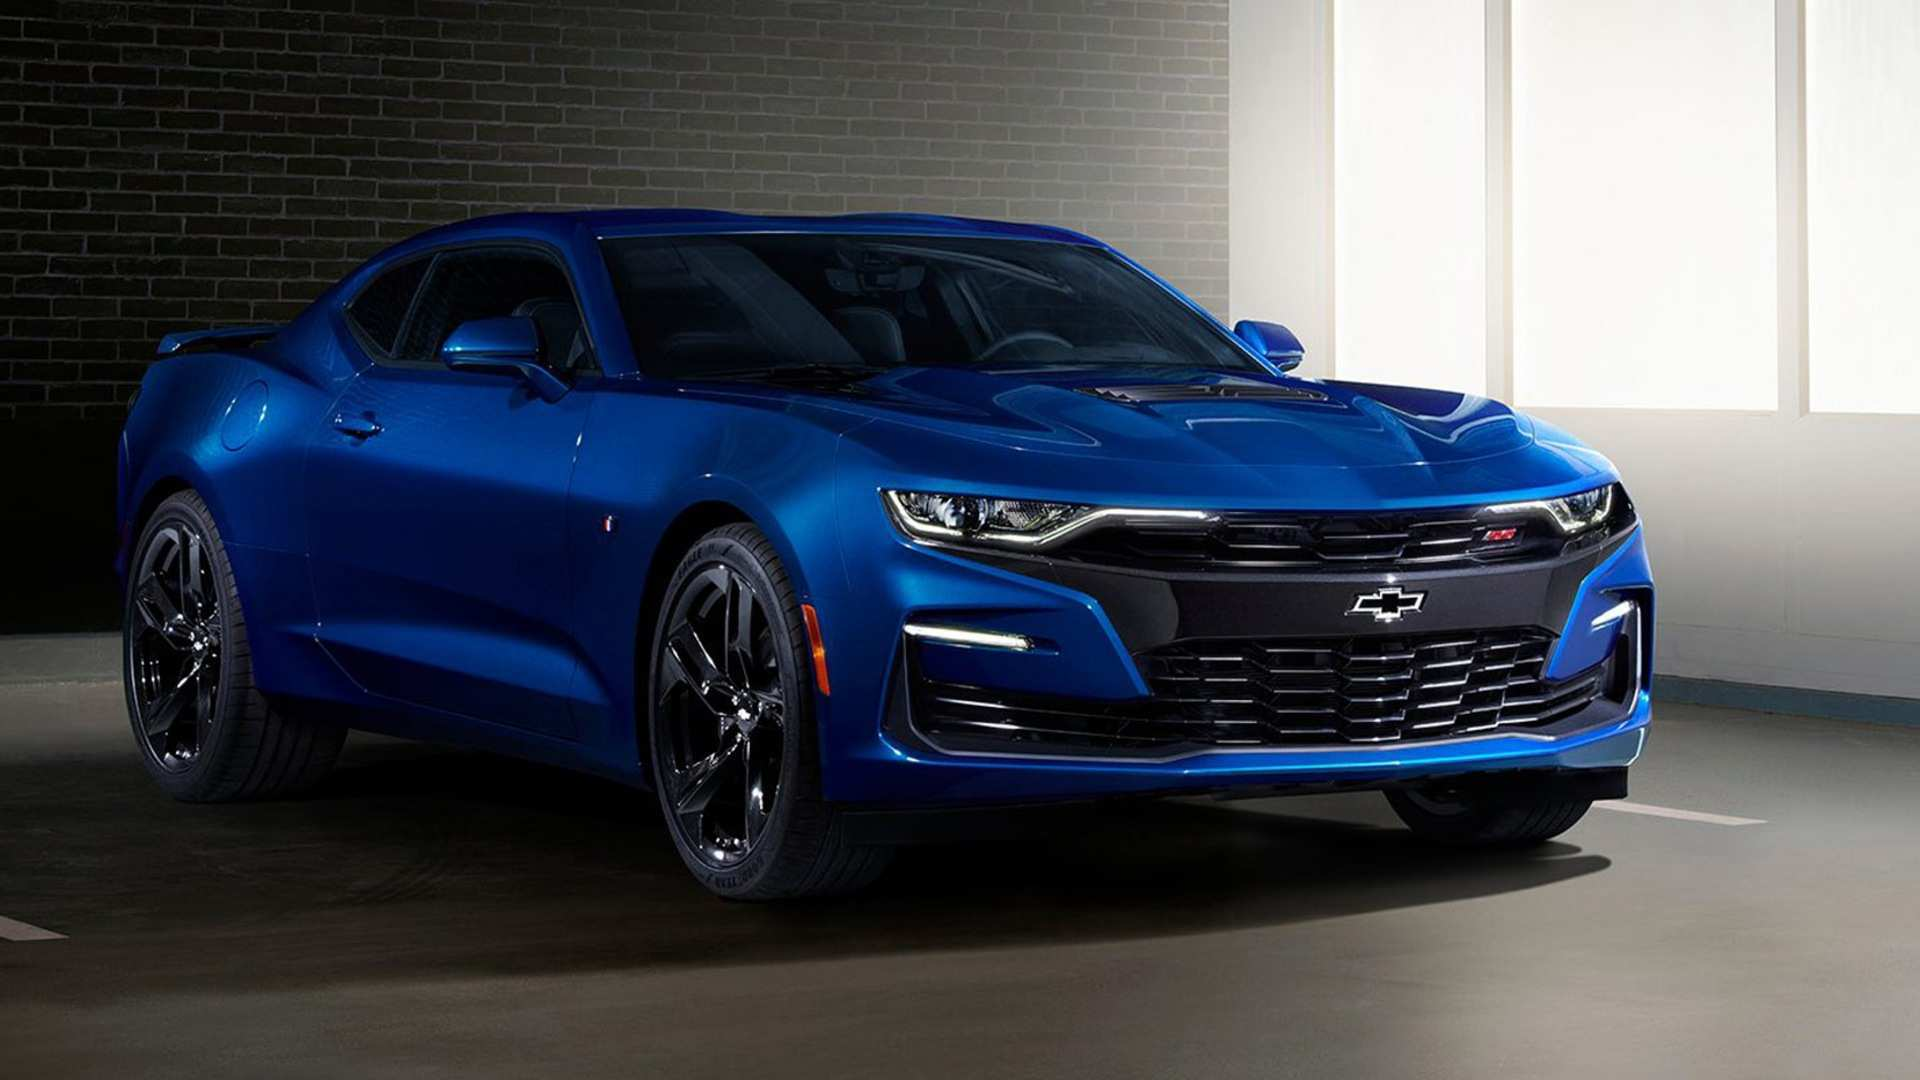 30 All New 2020 Camaro Z28 Horsepower Overview